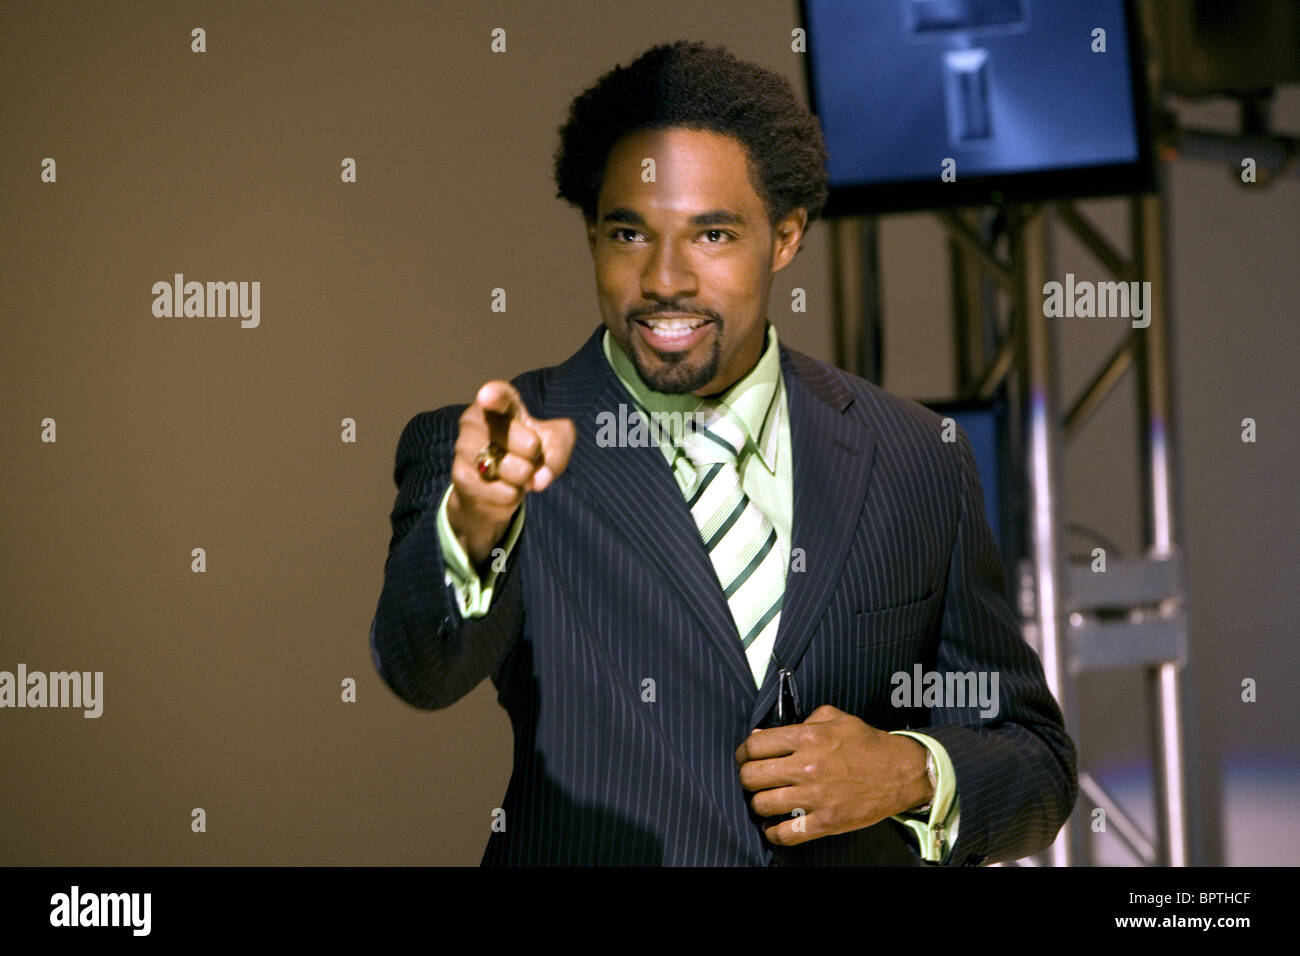 pthc russian JASON WINSTON GEORGE THREE CAN PLAY THAT GAME (2007) - Stock Image